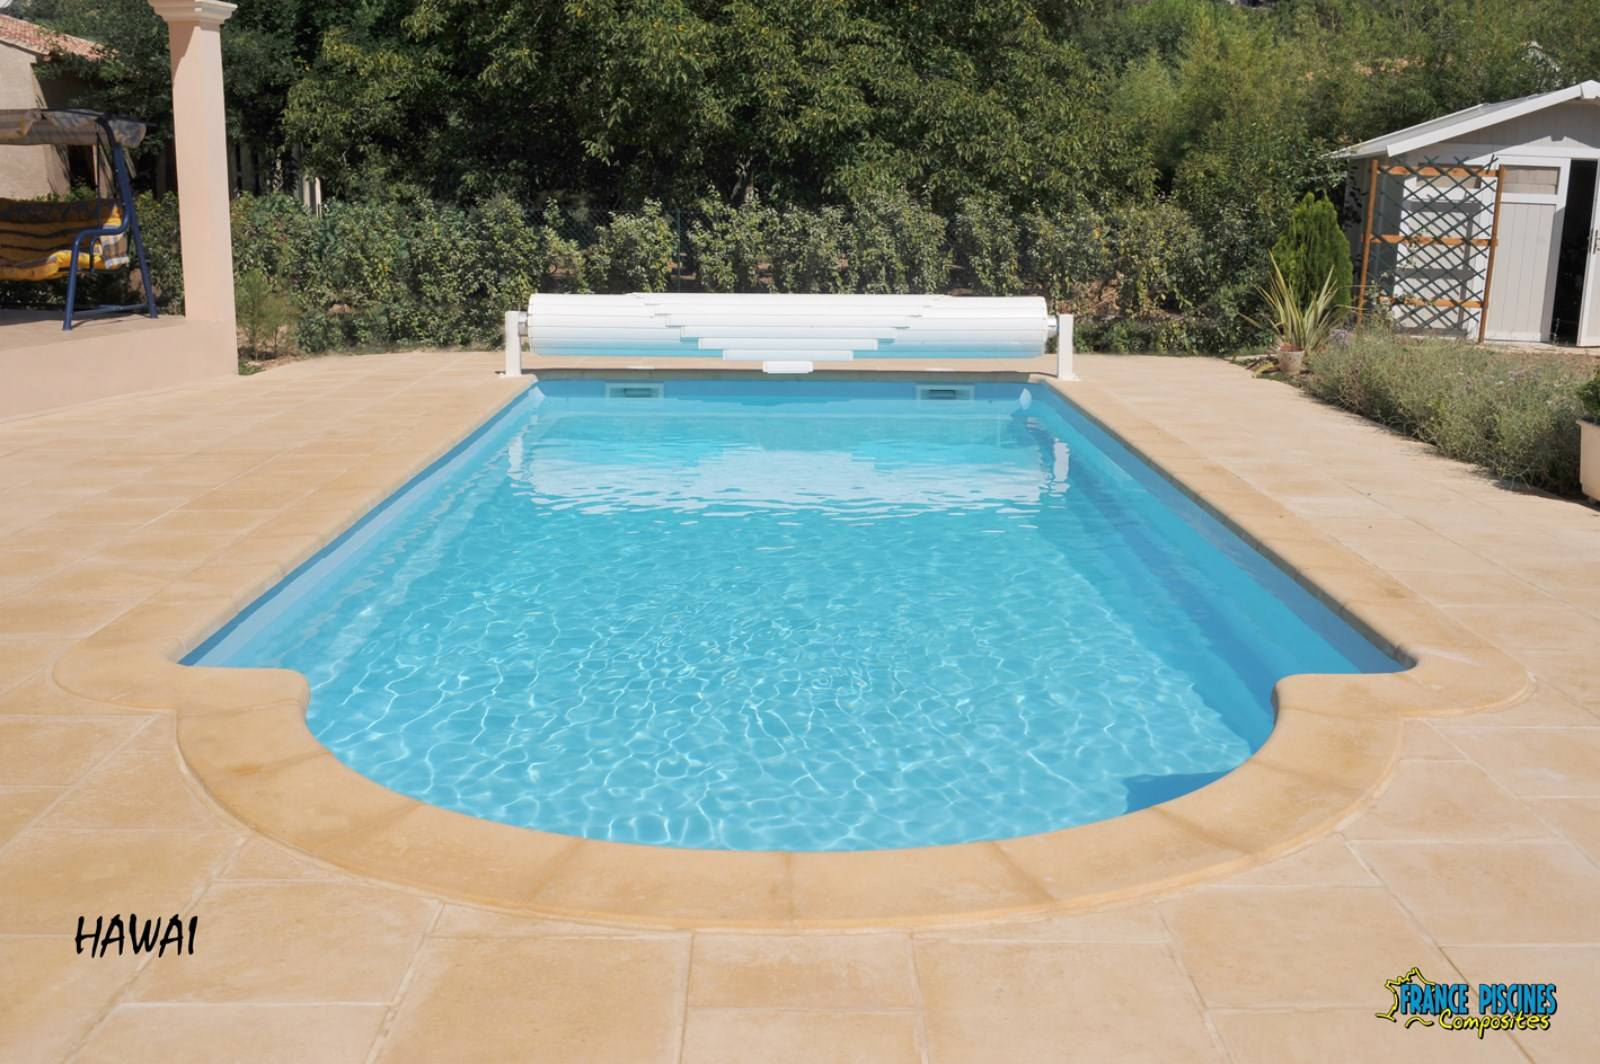 Vente et pose de piscine enterr e coque polyester for Coque piscine 8x4 pas cher